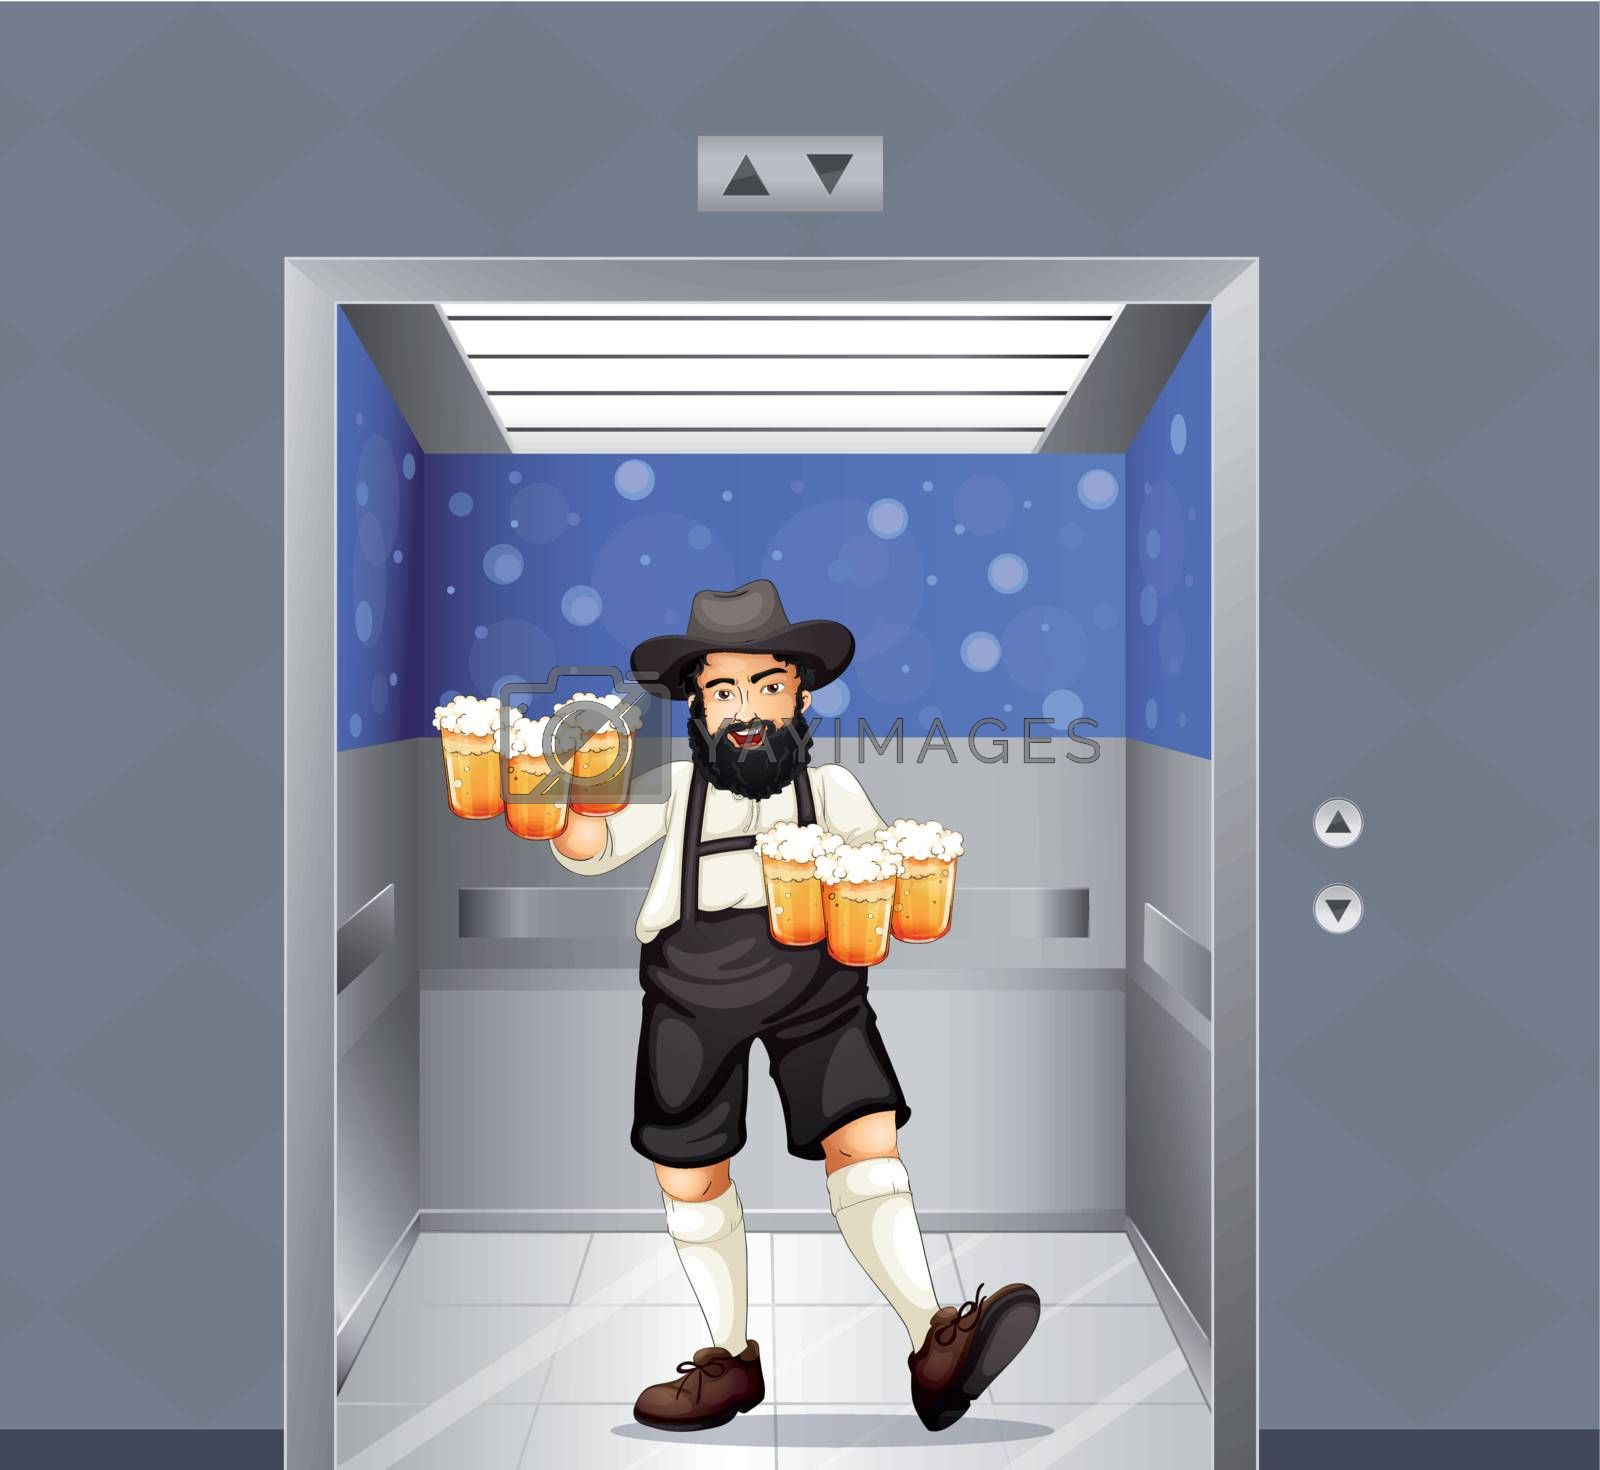 Illustration of a waiter with mug of beers at the elevator